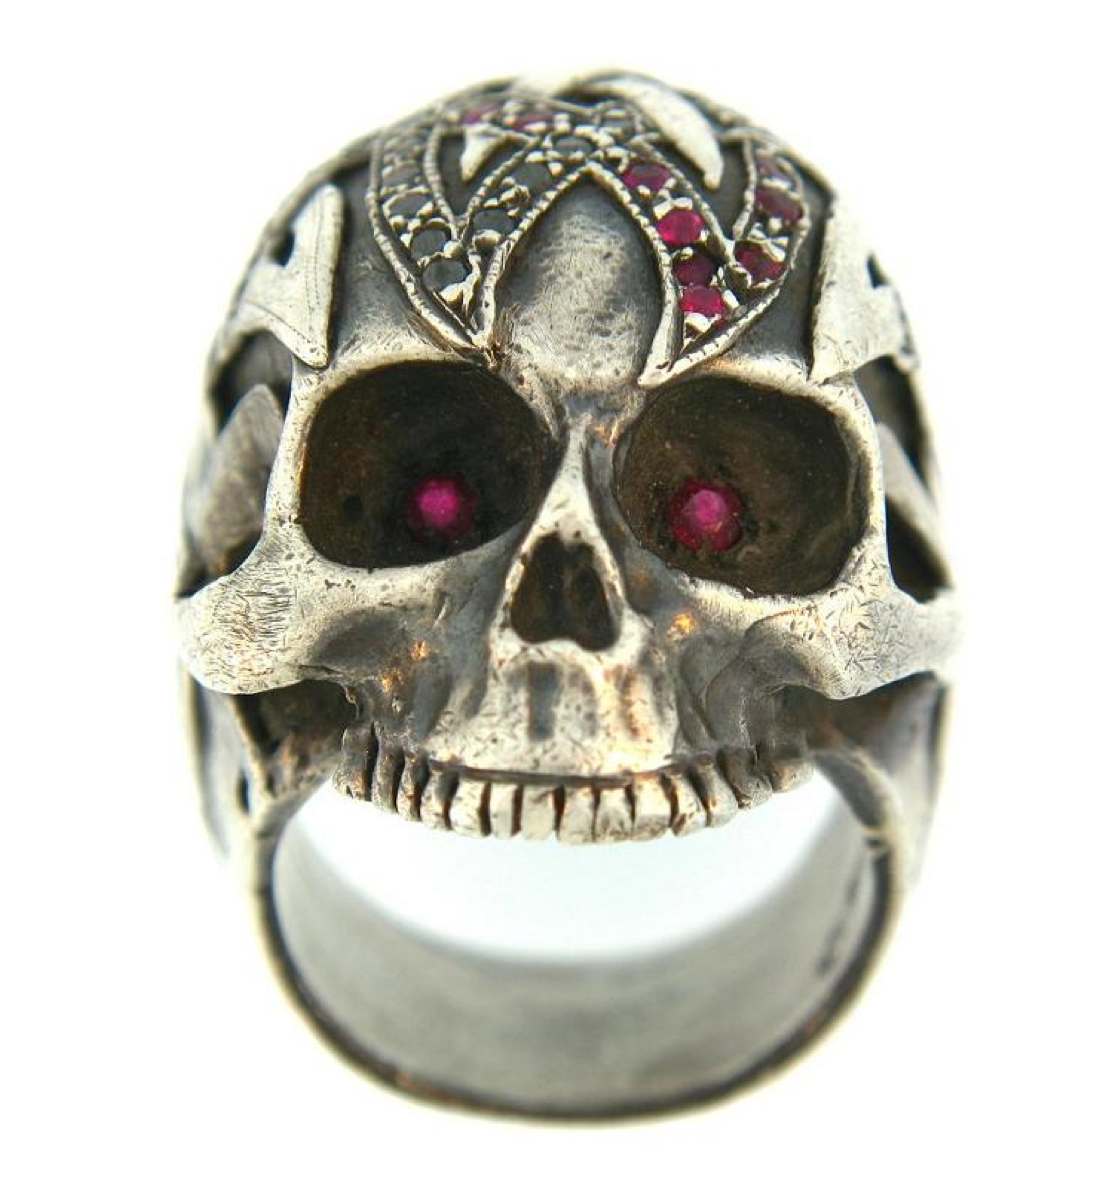 Atelier Minyon Alp Sagnak Signature Skull Ring - Talisman Collection